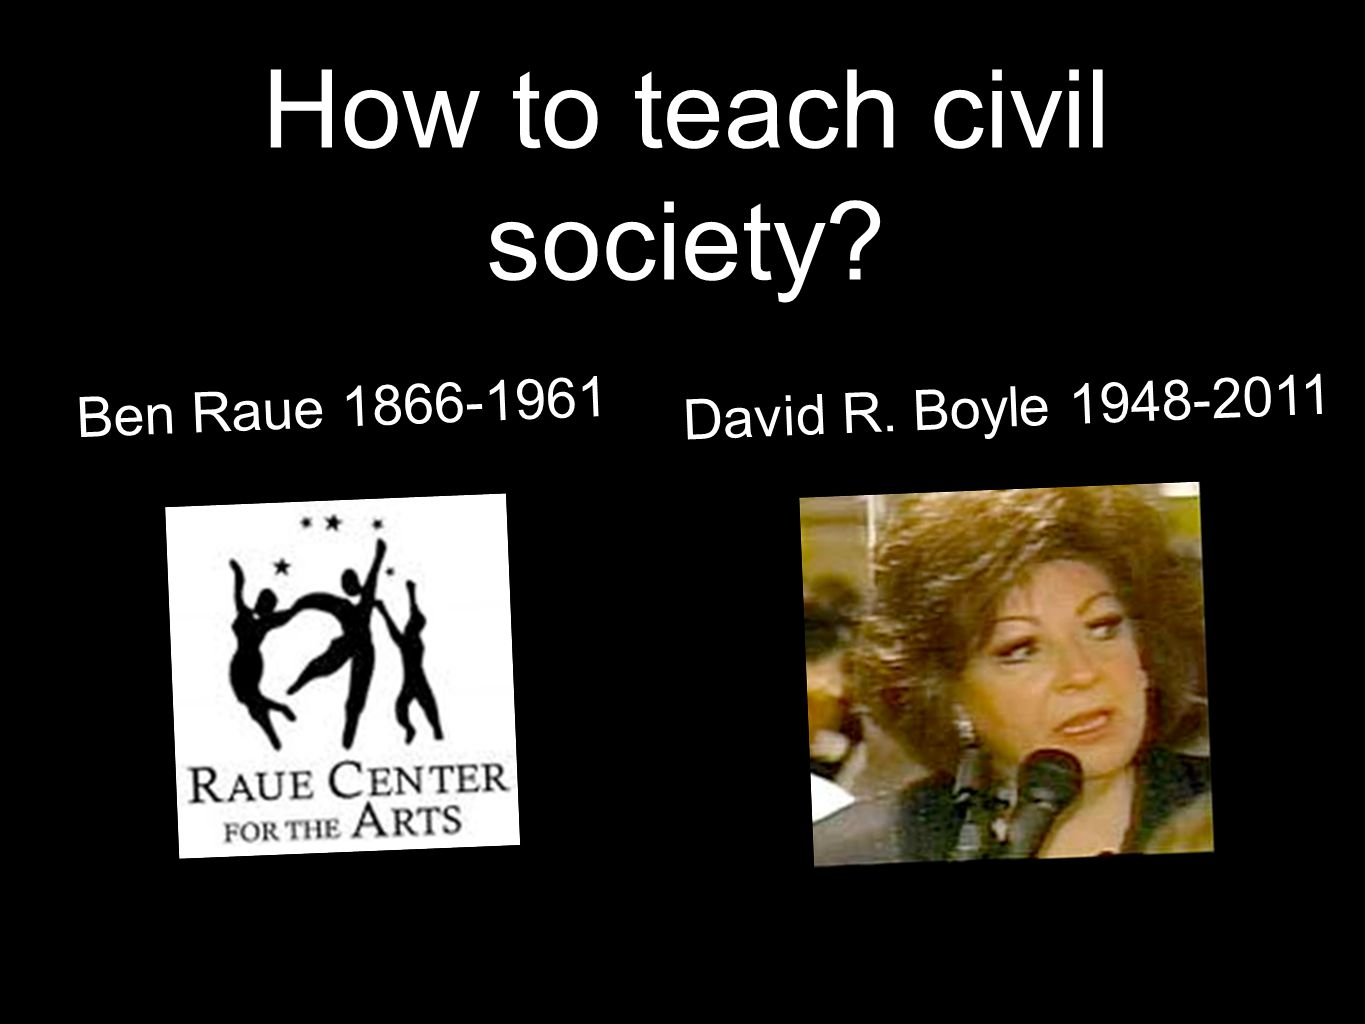 How to teach civil society? Ben Raue 1866-1961 David R. Boyle 1948-2011